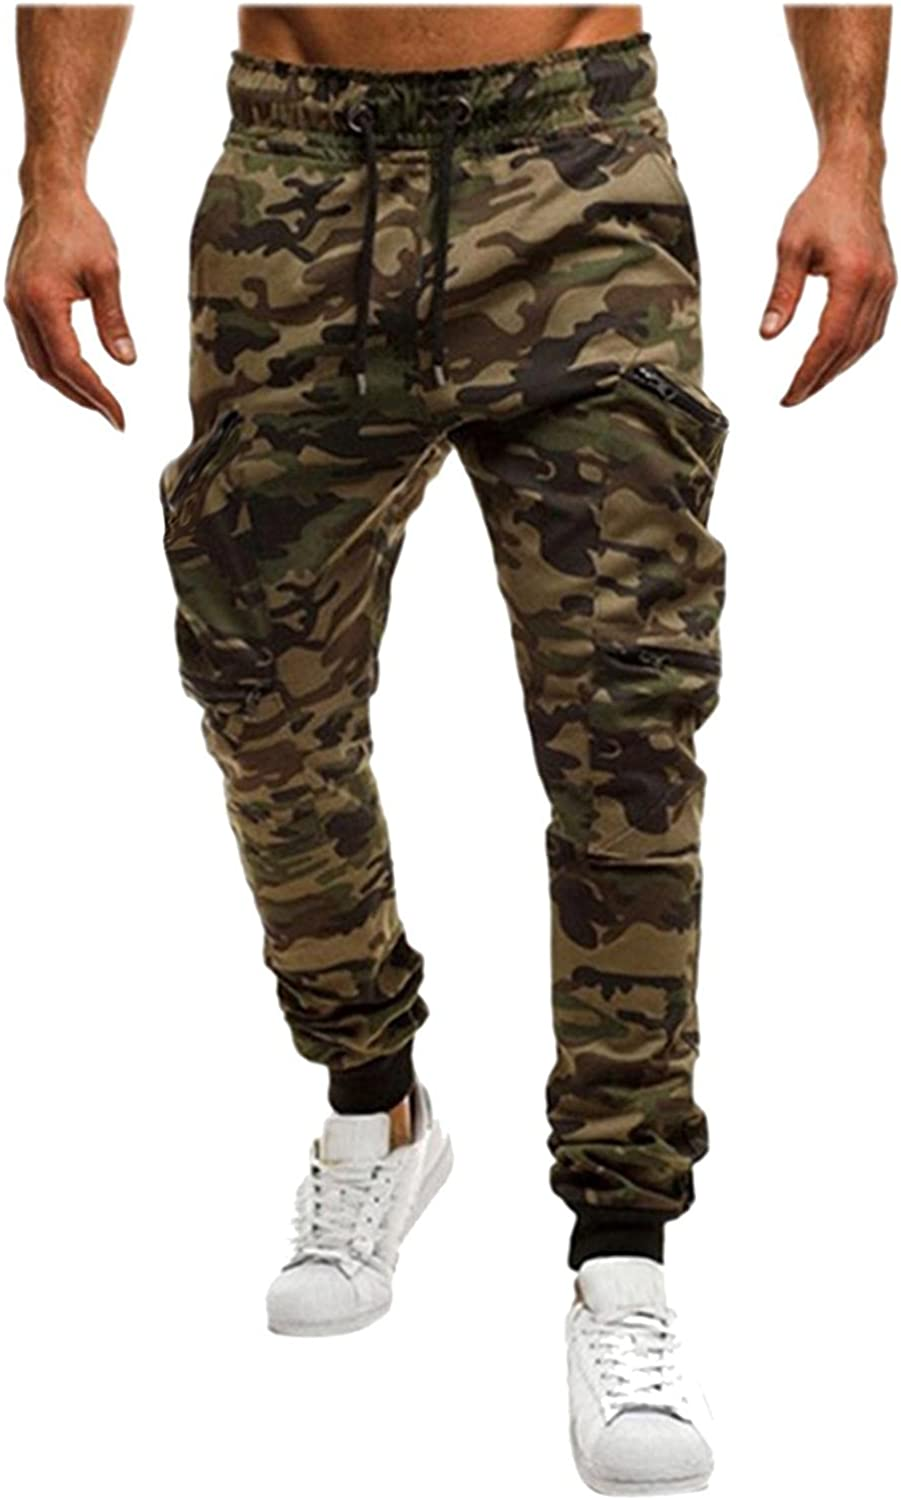 Beshion Camo Sweatpants for Men Jogger Slim Cargo Pants Stitching Printed Active Athletic Soft Trousers for Running Gym